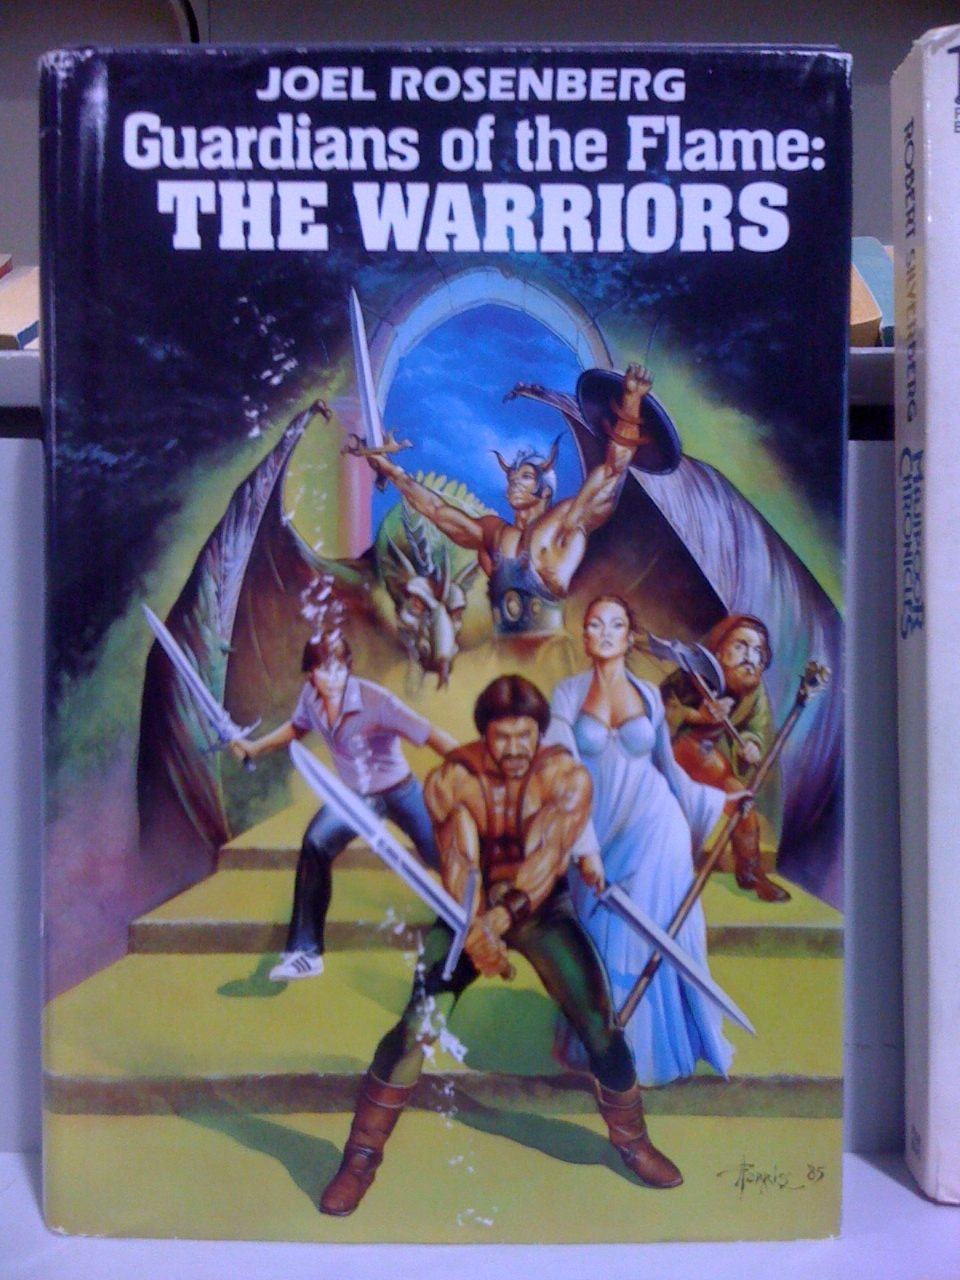 The Warriors! Coming to a local leisure centre near you!